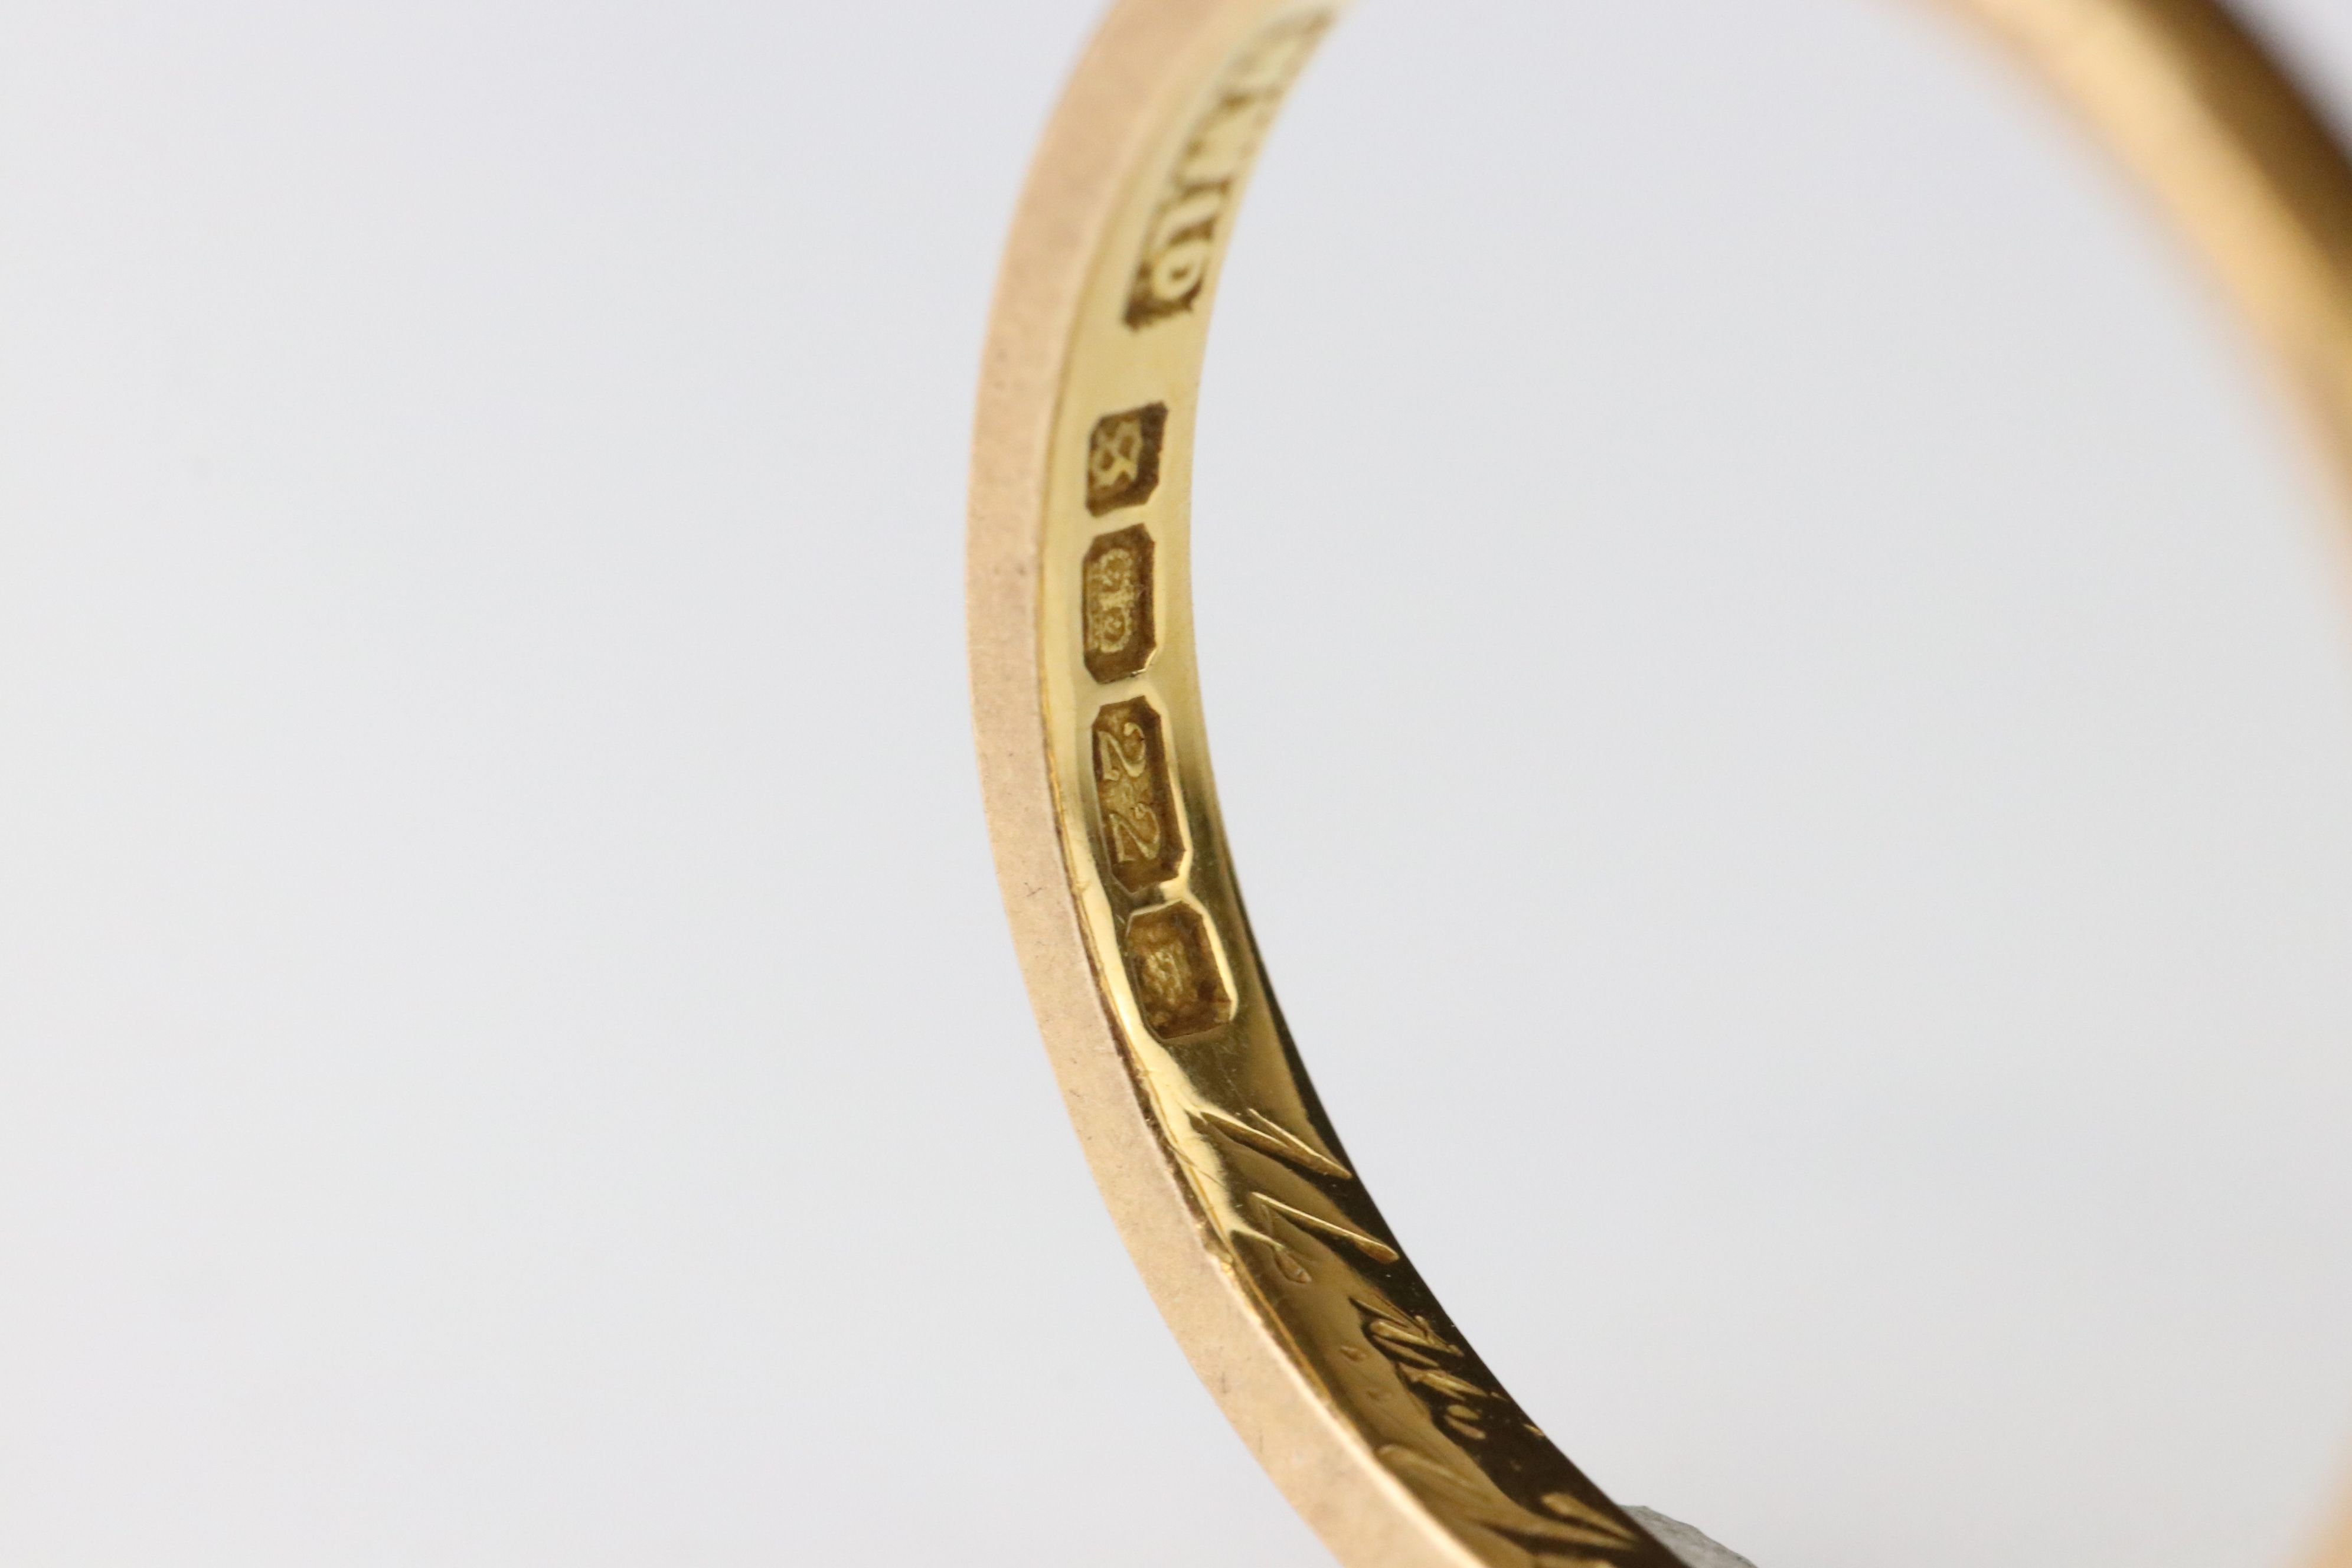 22ct yellow gold wedding band, personalisation to inner shank, width approx 2mm, ring size Q - Image 2 of 3